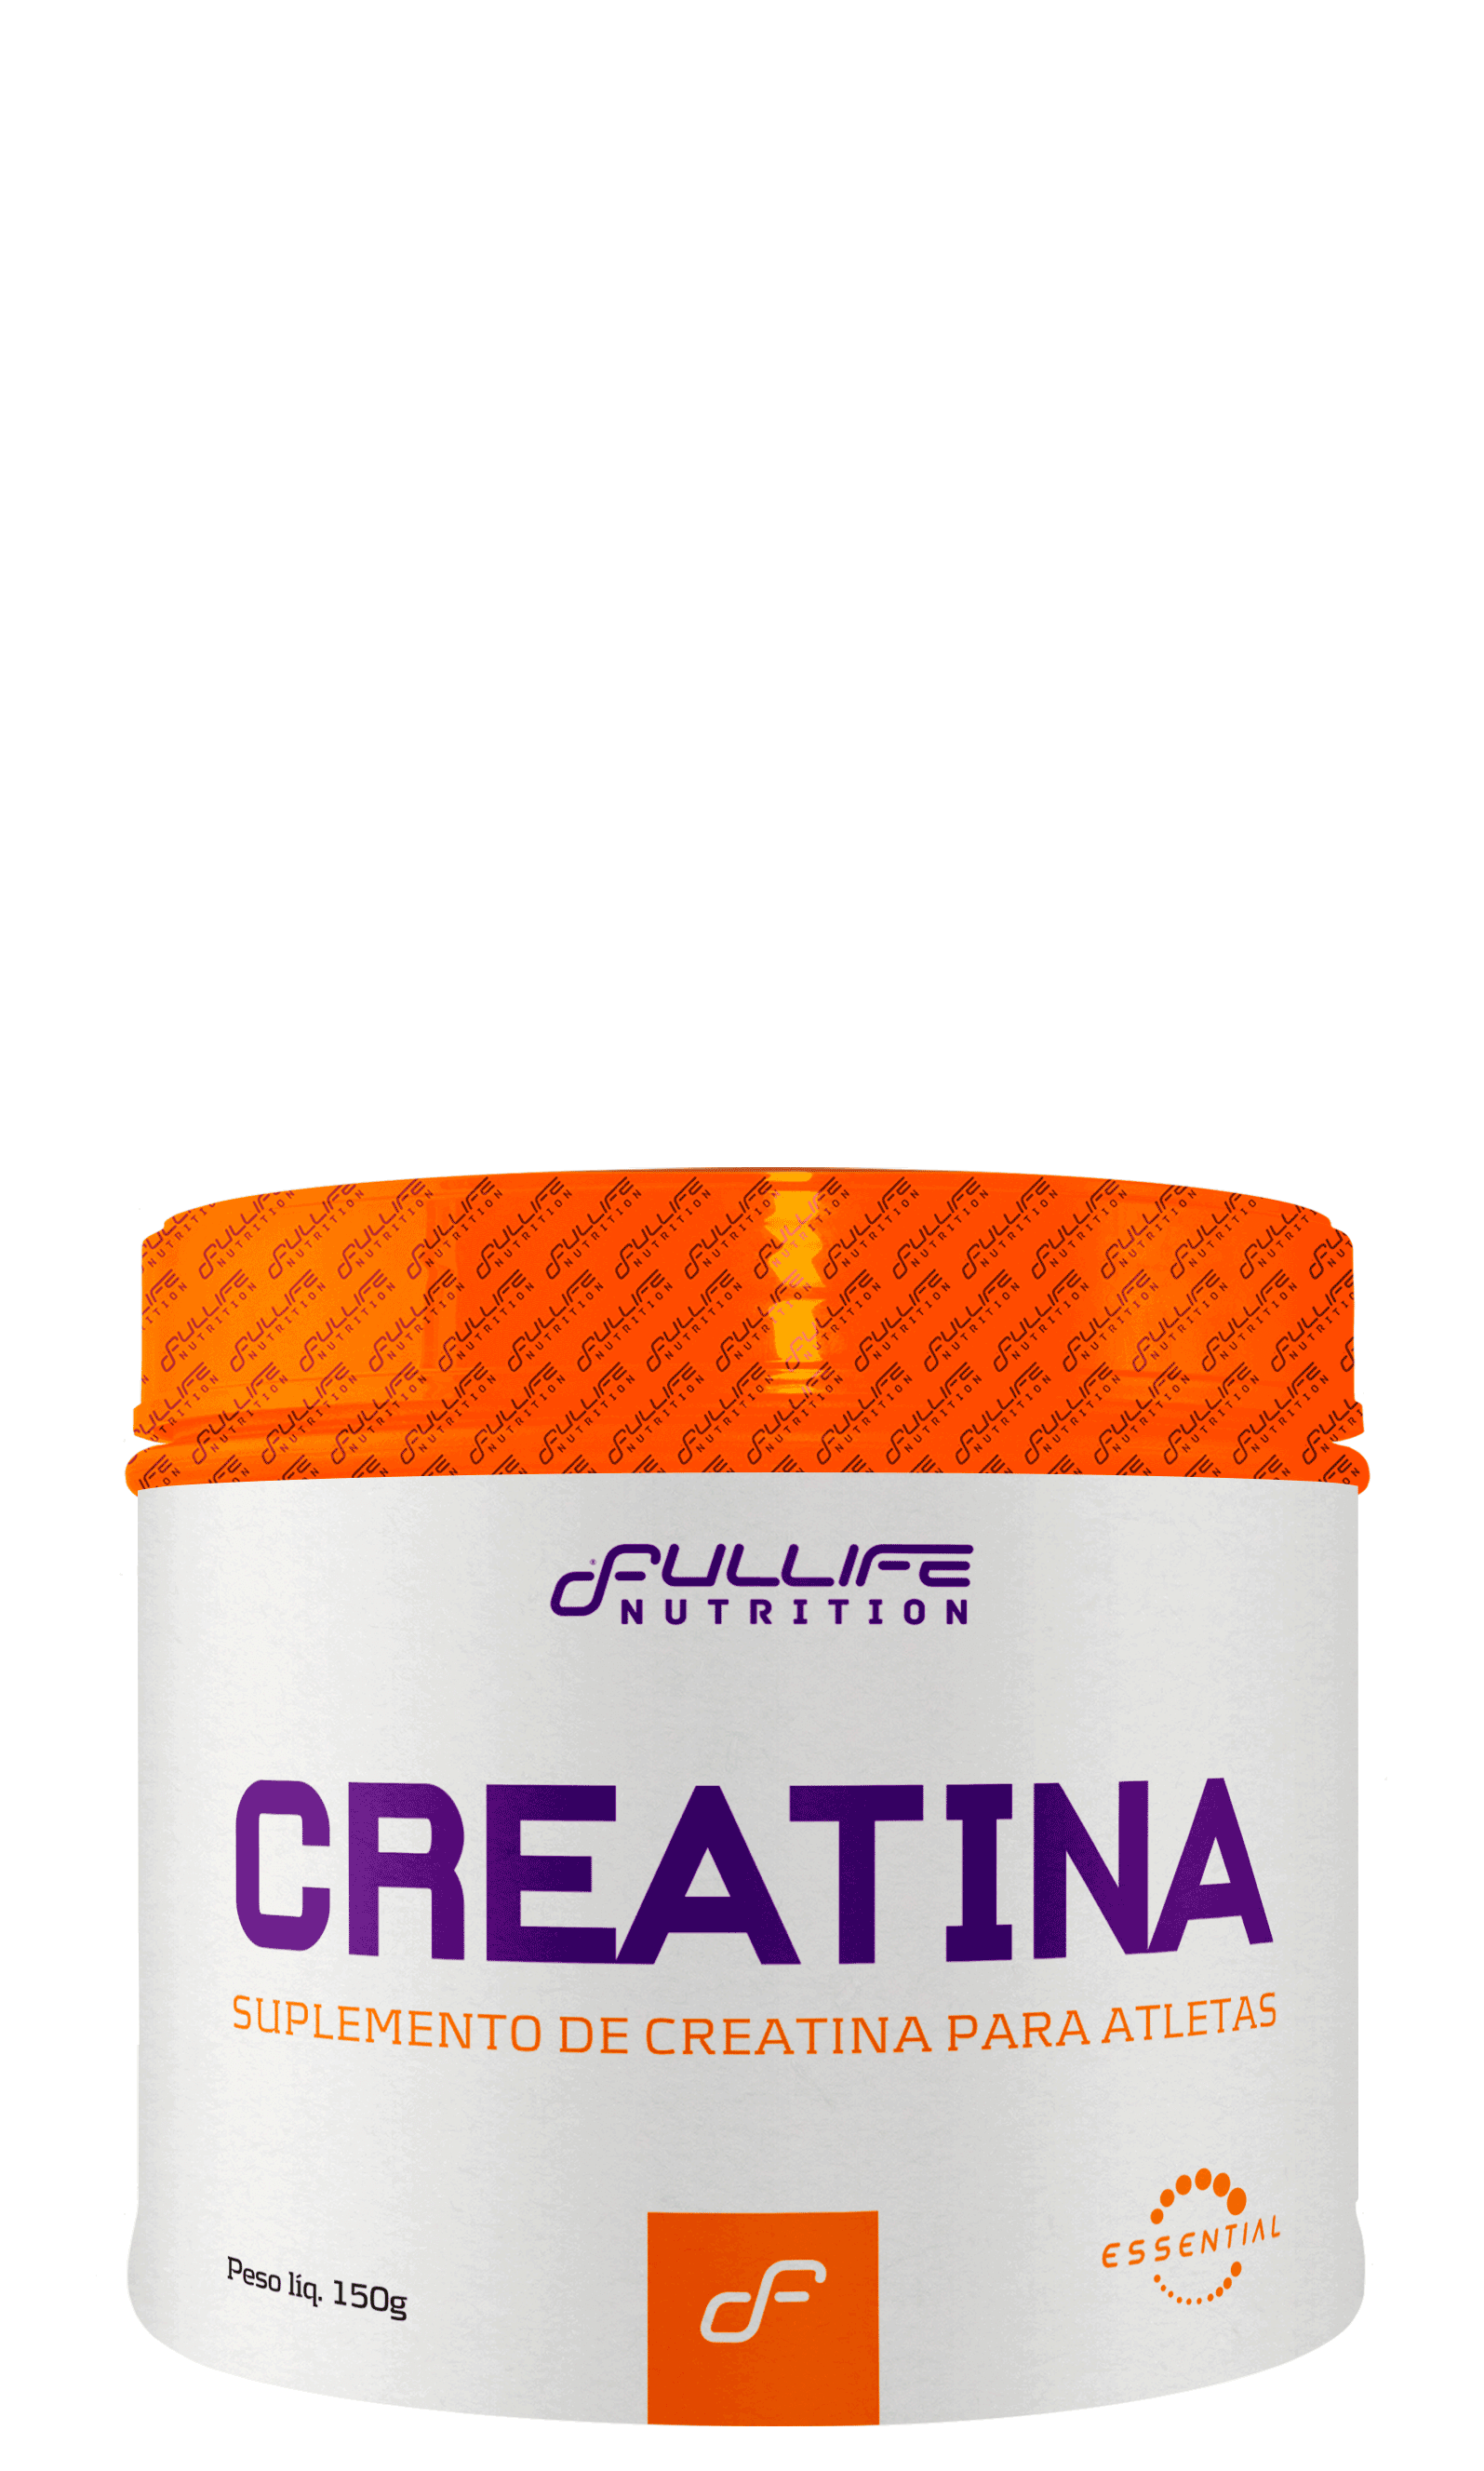 creatina-300g-e-150g-fullife-nutrition